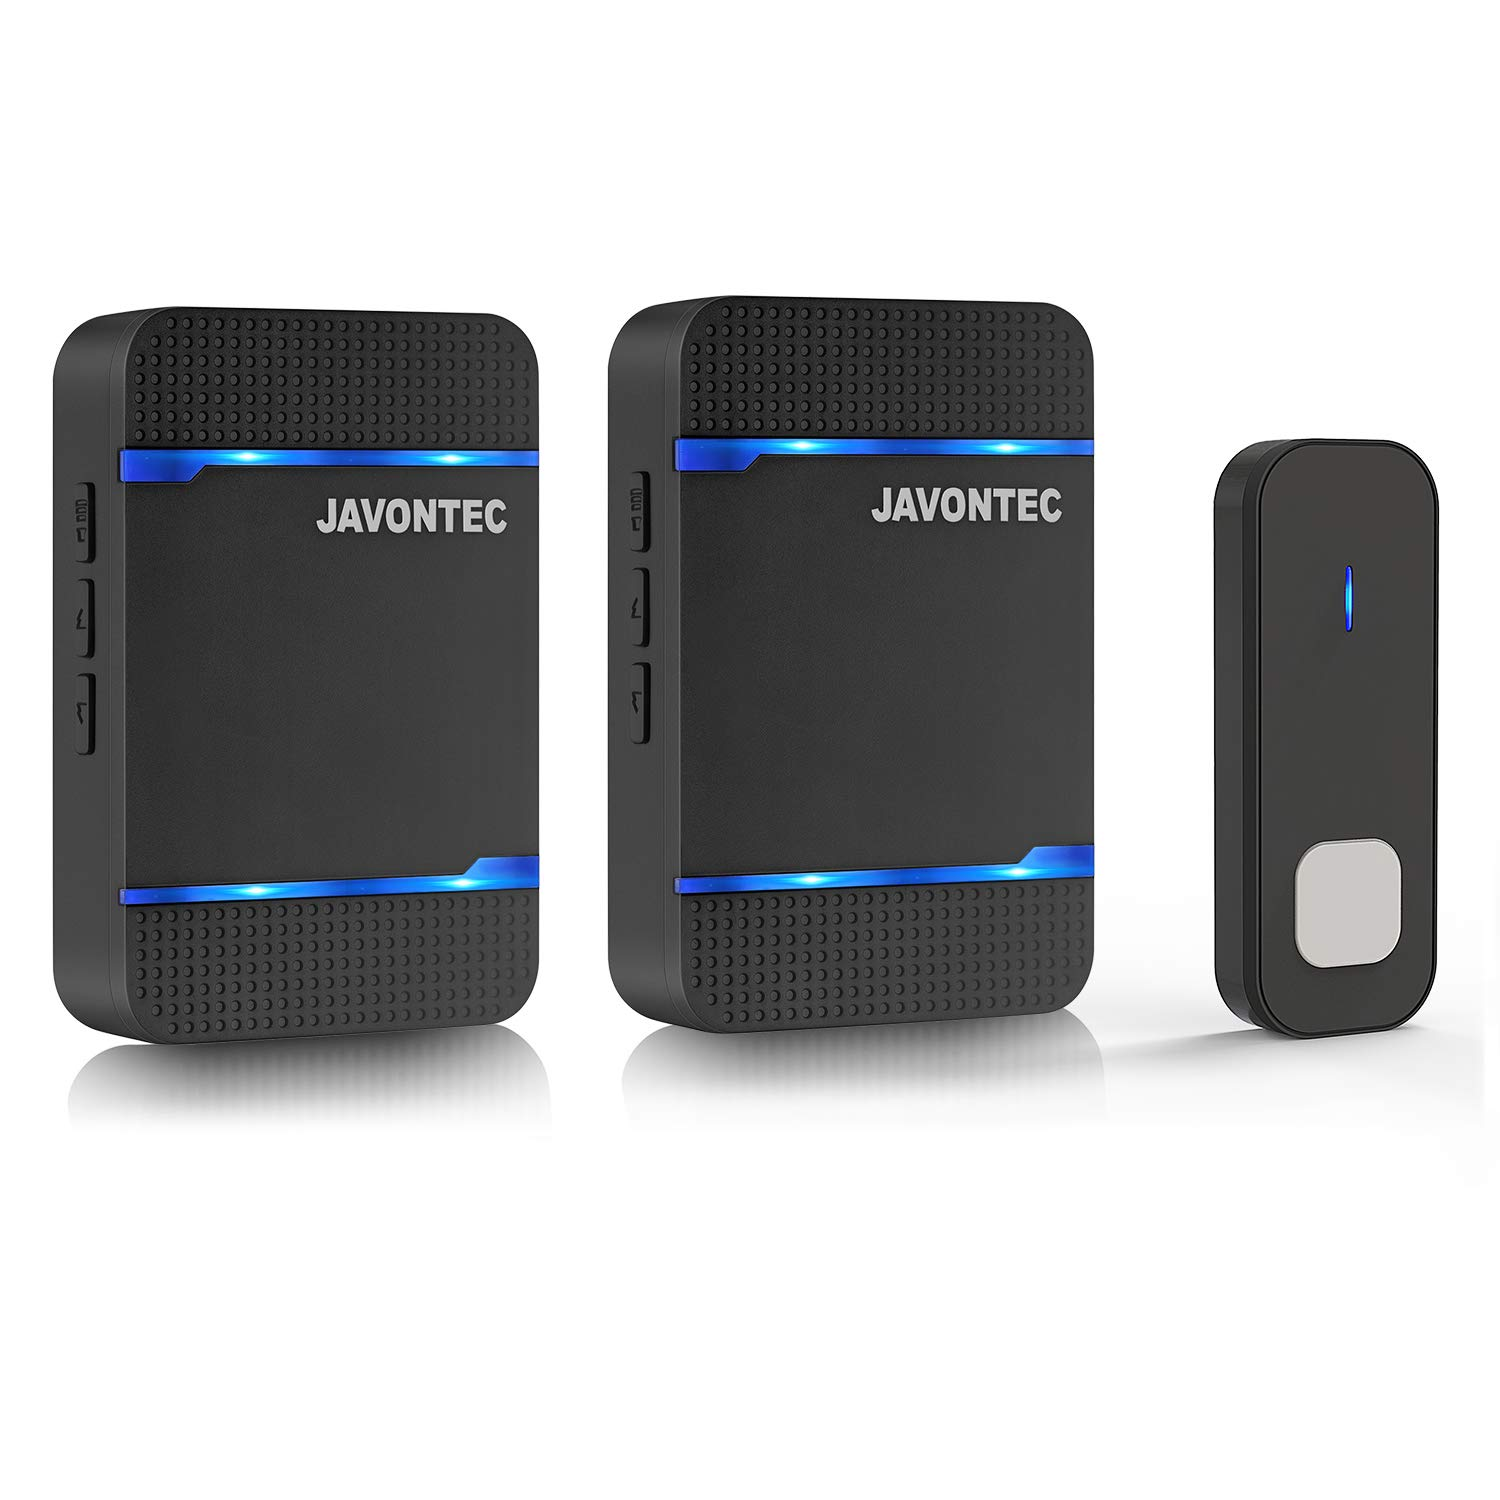 JAVONTEC Wireless Doorbell with LED Indicator,Waterproof IP55,1000ft Long Range with 55 Ringtones and 5 Volume Levels,2 Plug-in Receivers&1 Remote Button(Black)